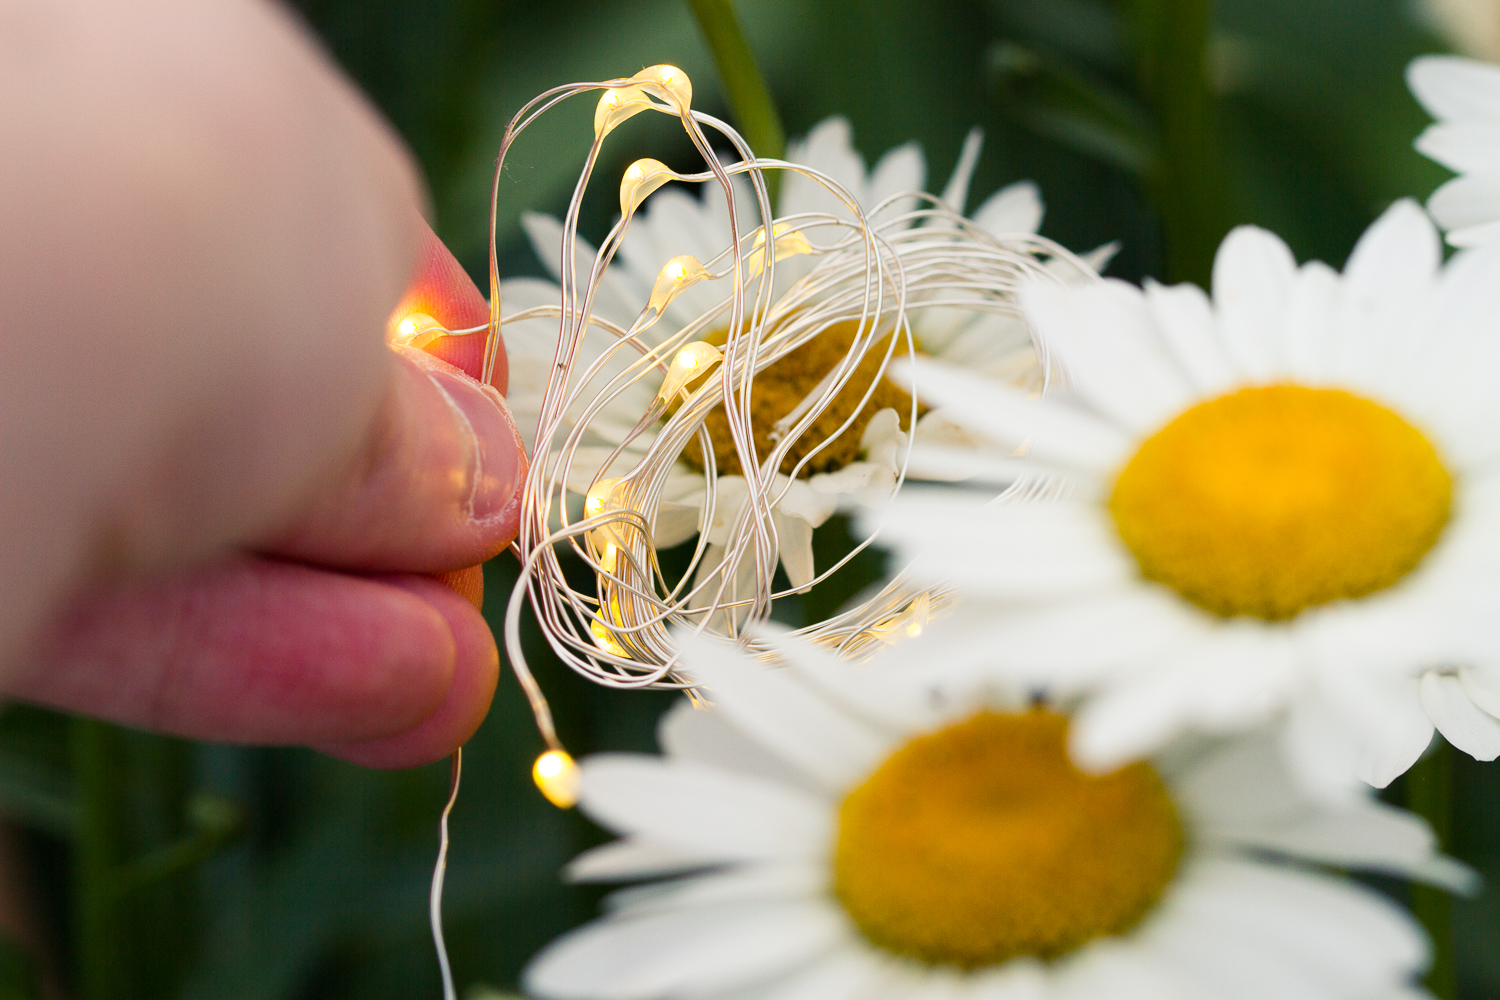 Image: Holding the lights in behind the daisy.